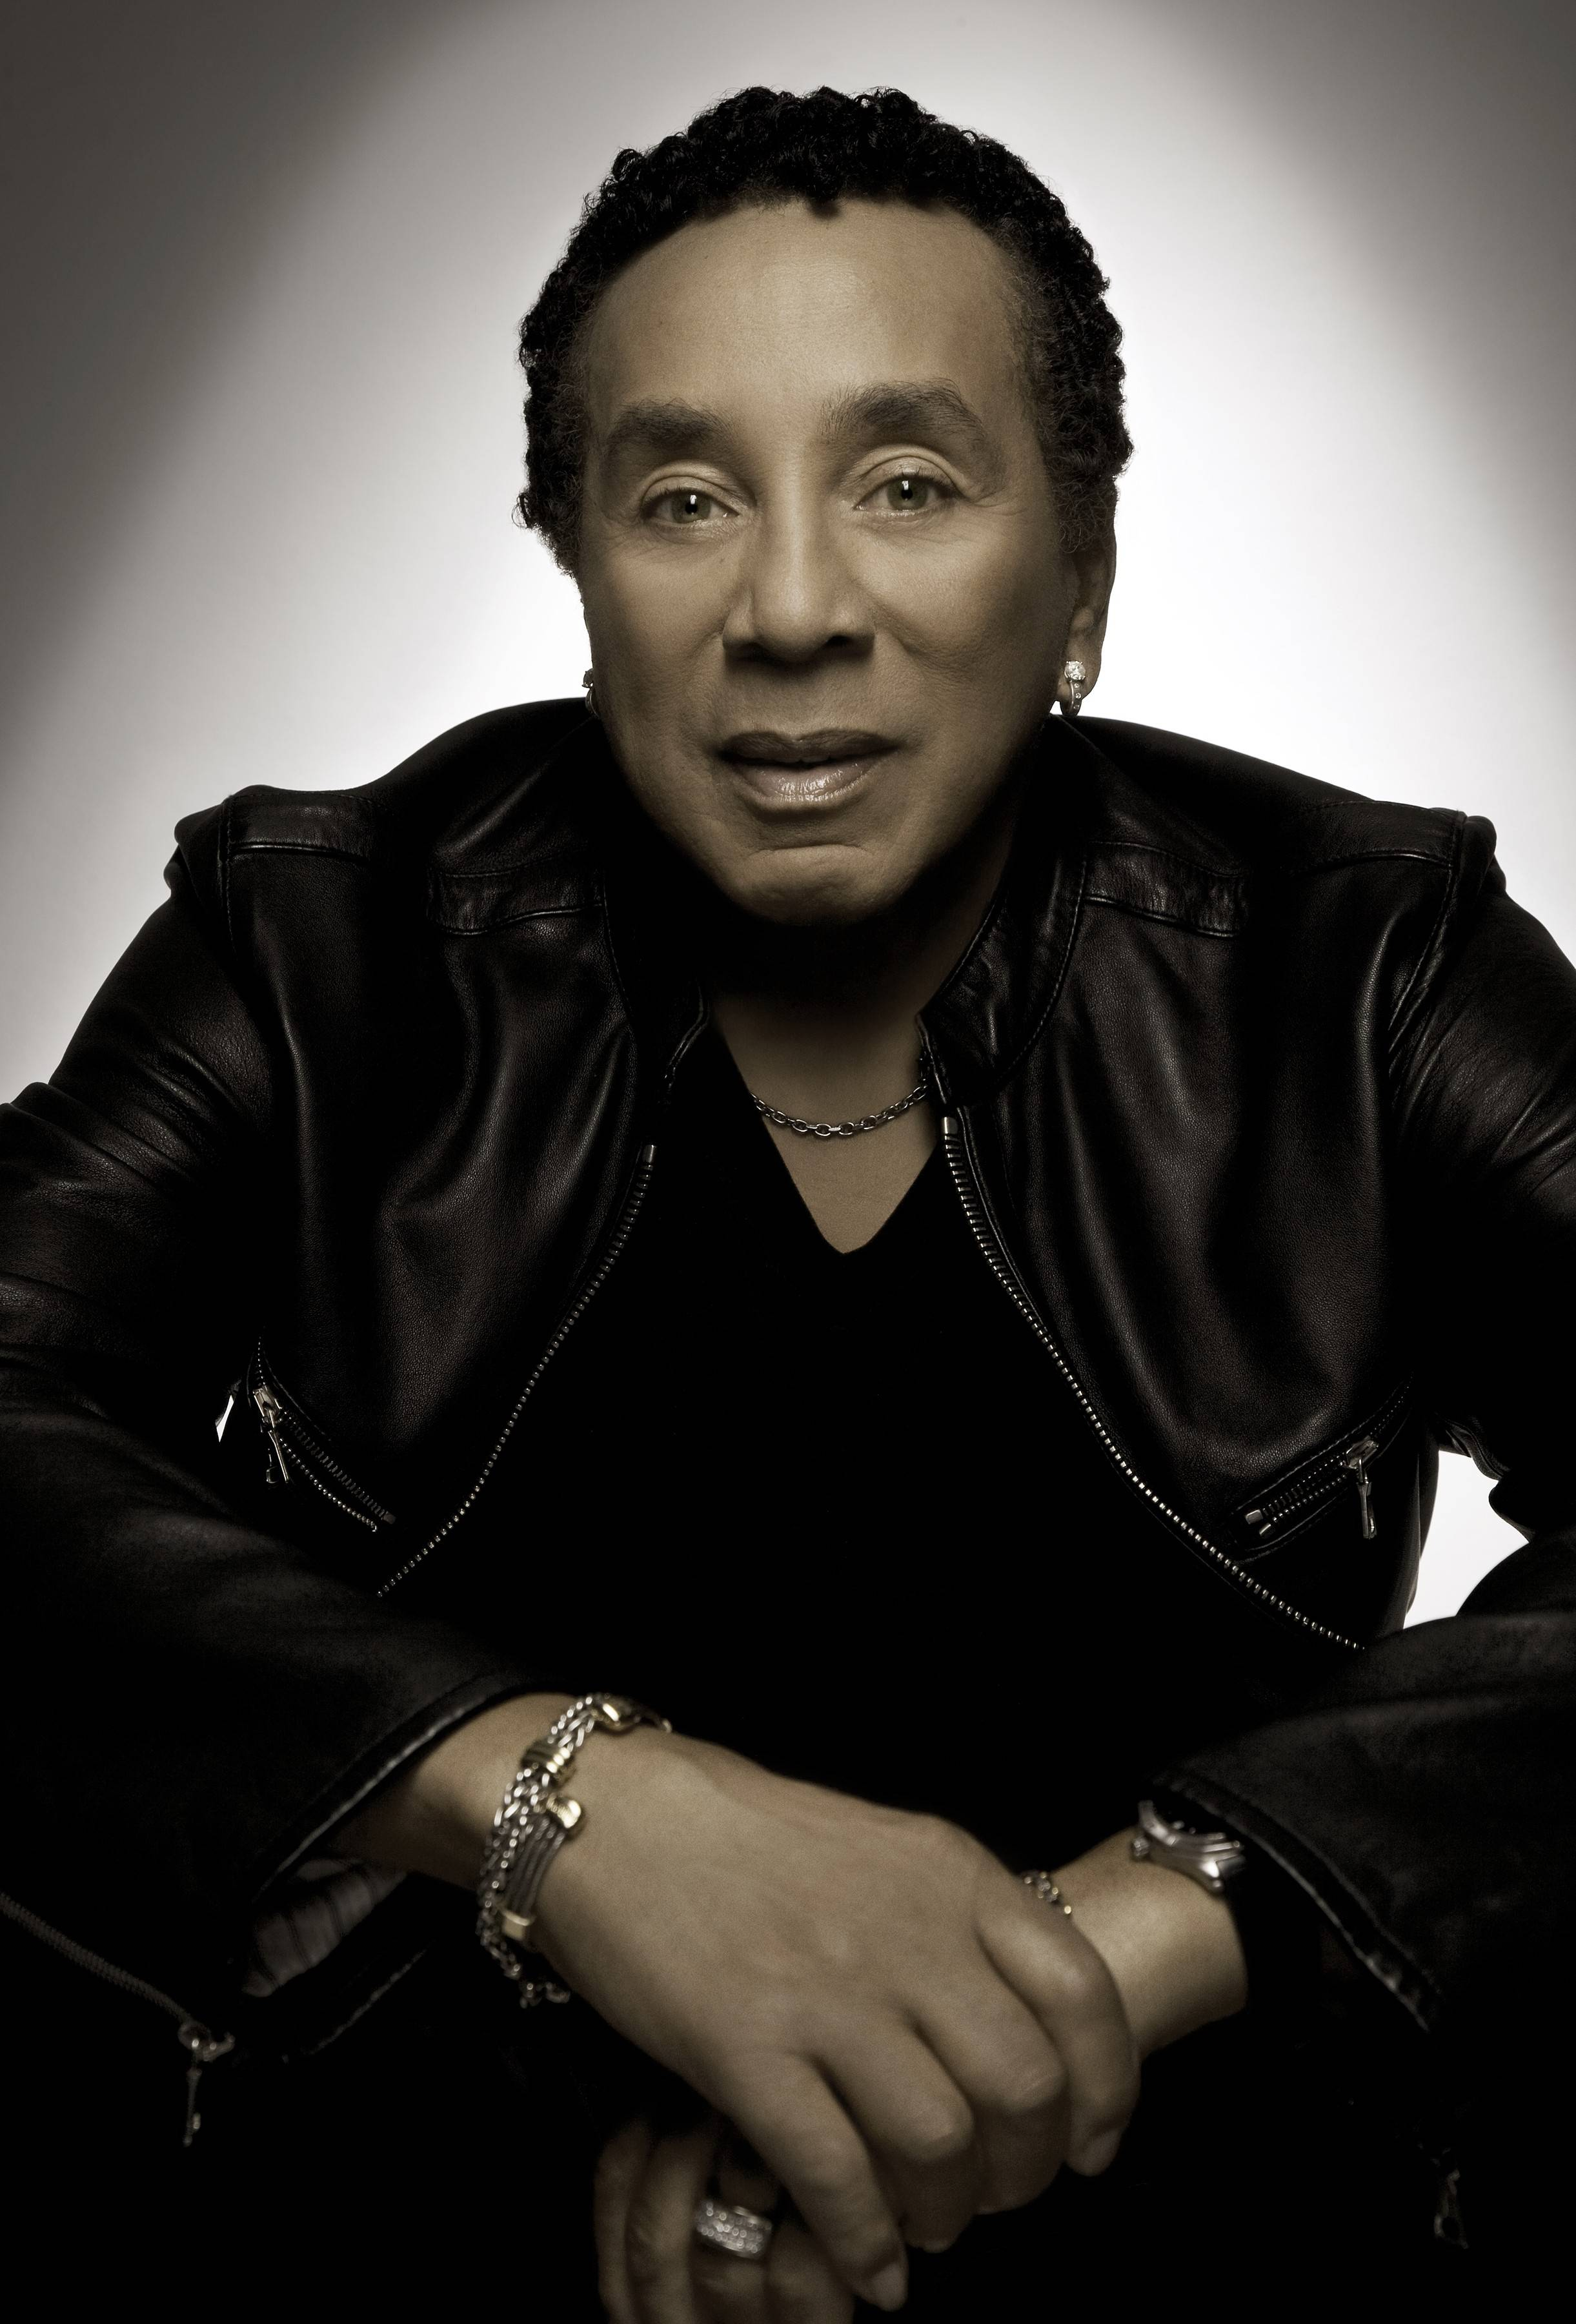 Smokey Robinson will perform in concert at the Genesee Theatre in Waukegan.